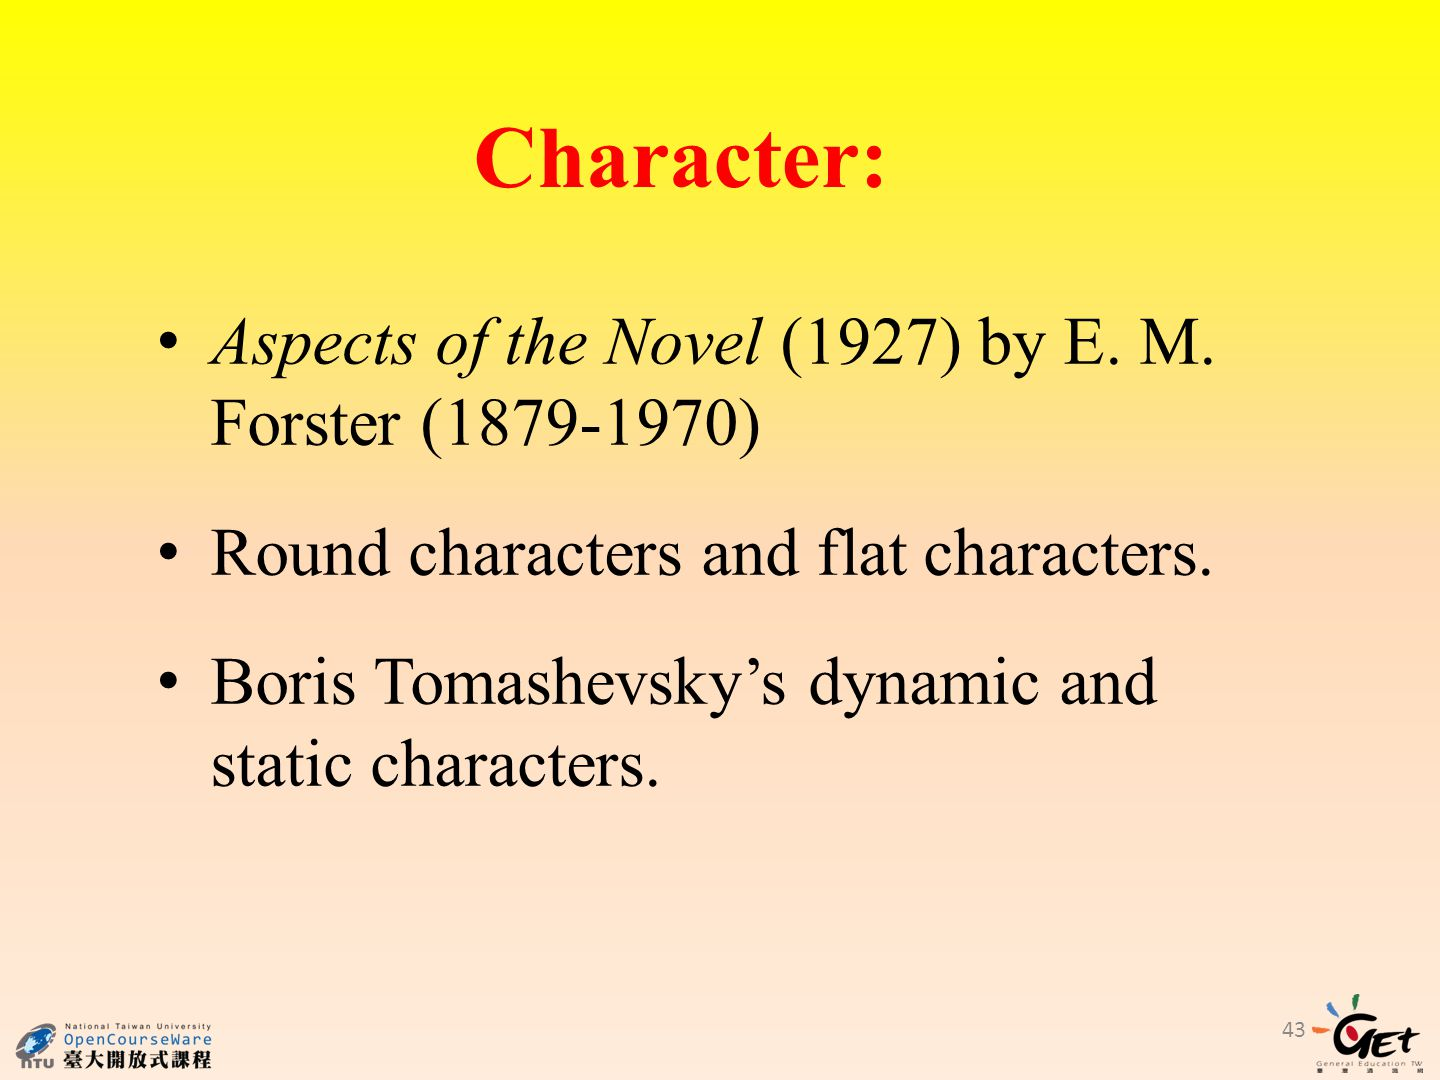 Aspects of the Novel (1927) by E. M. Forster (1879-1970) Round characters and flat characters.